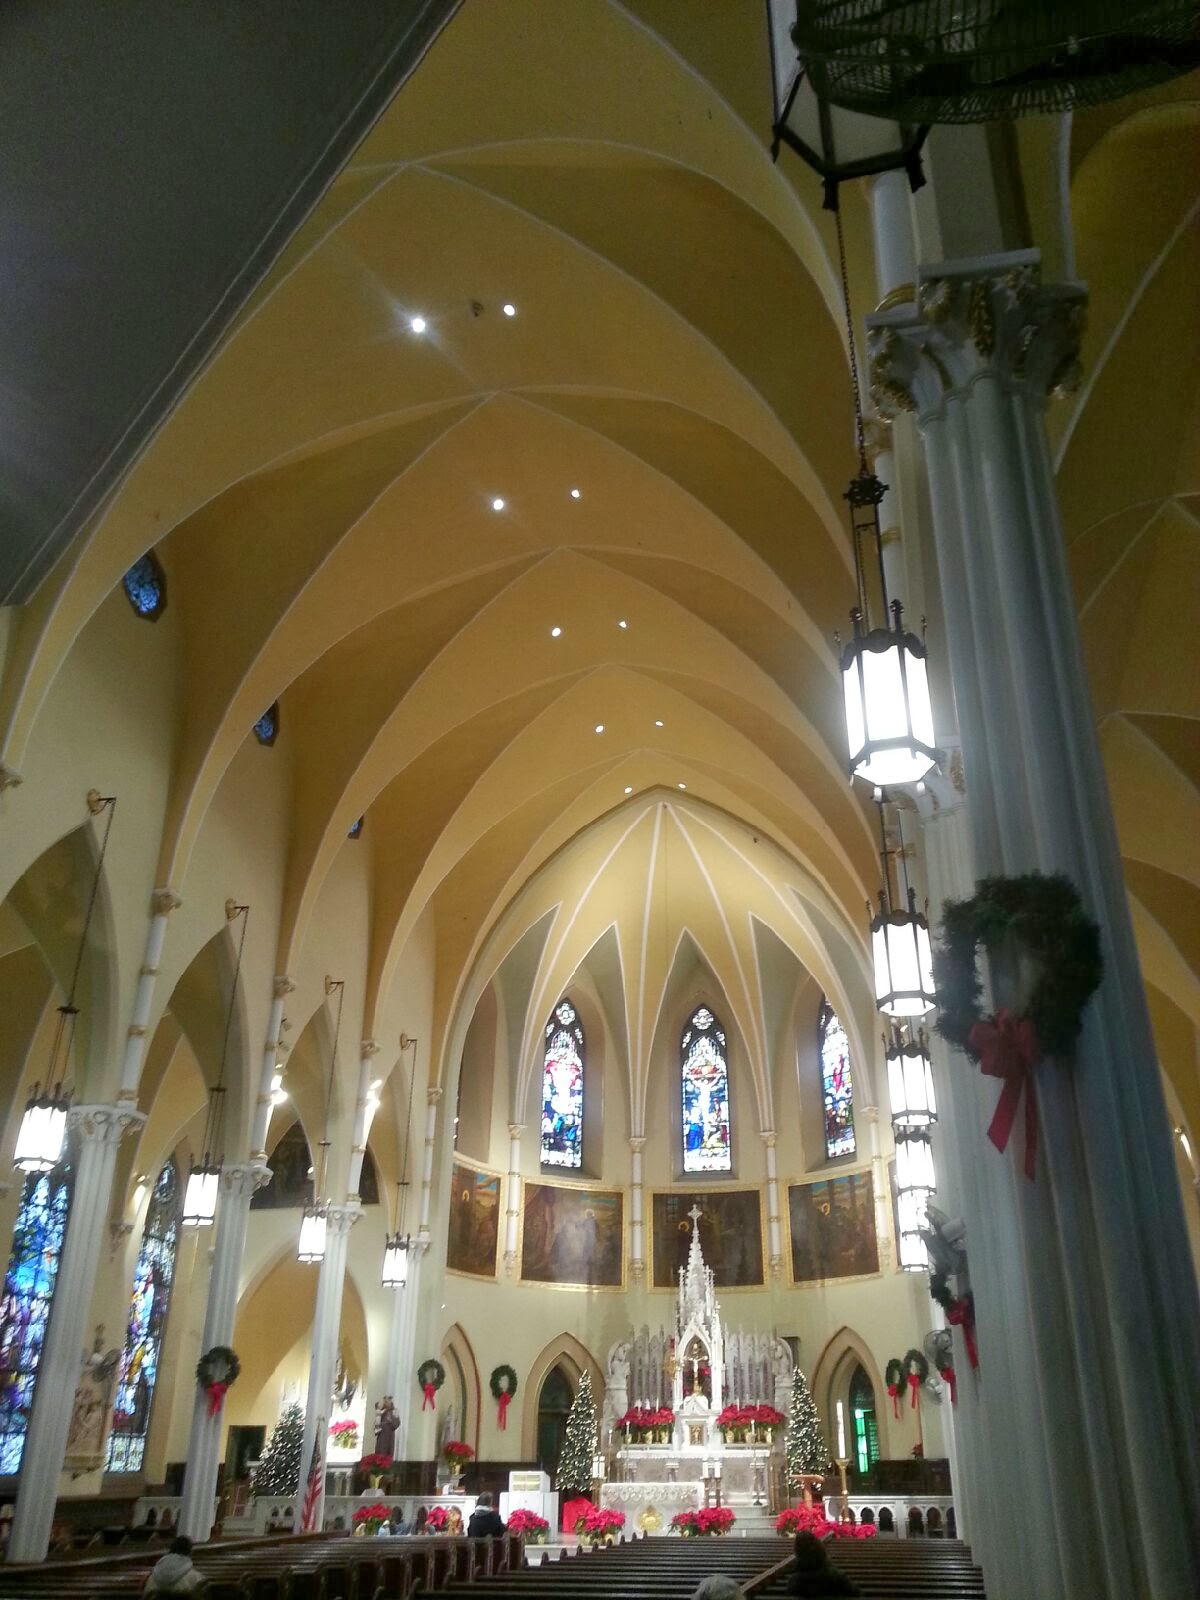 Interior of main church building